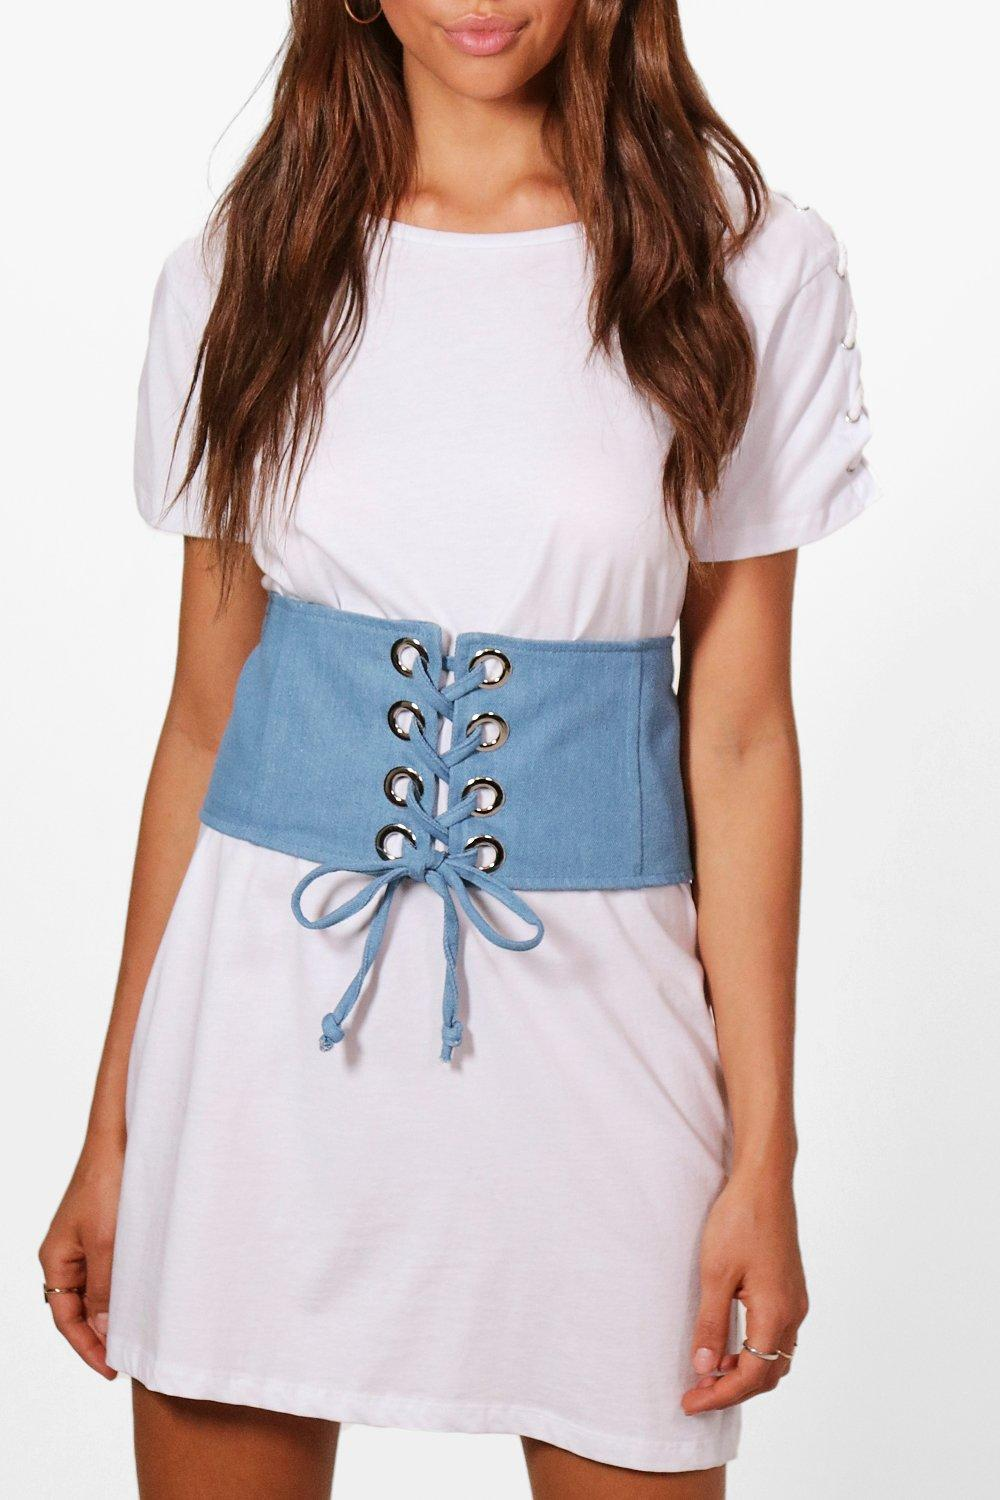 Denim Eyelet Detail Corset Belt - blue - Elizabeth